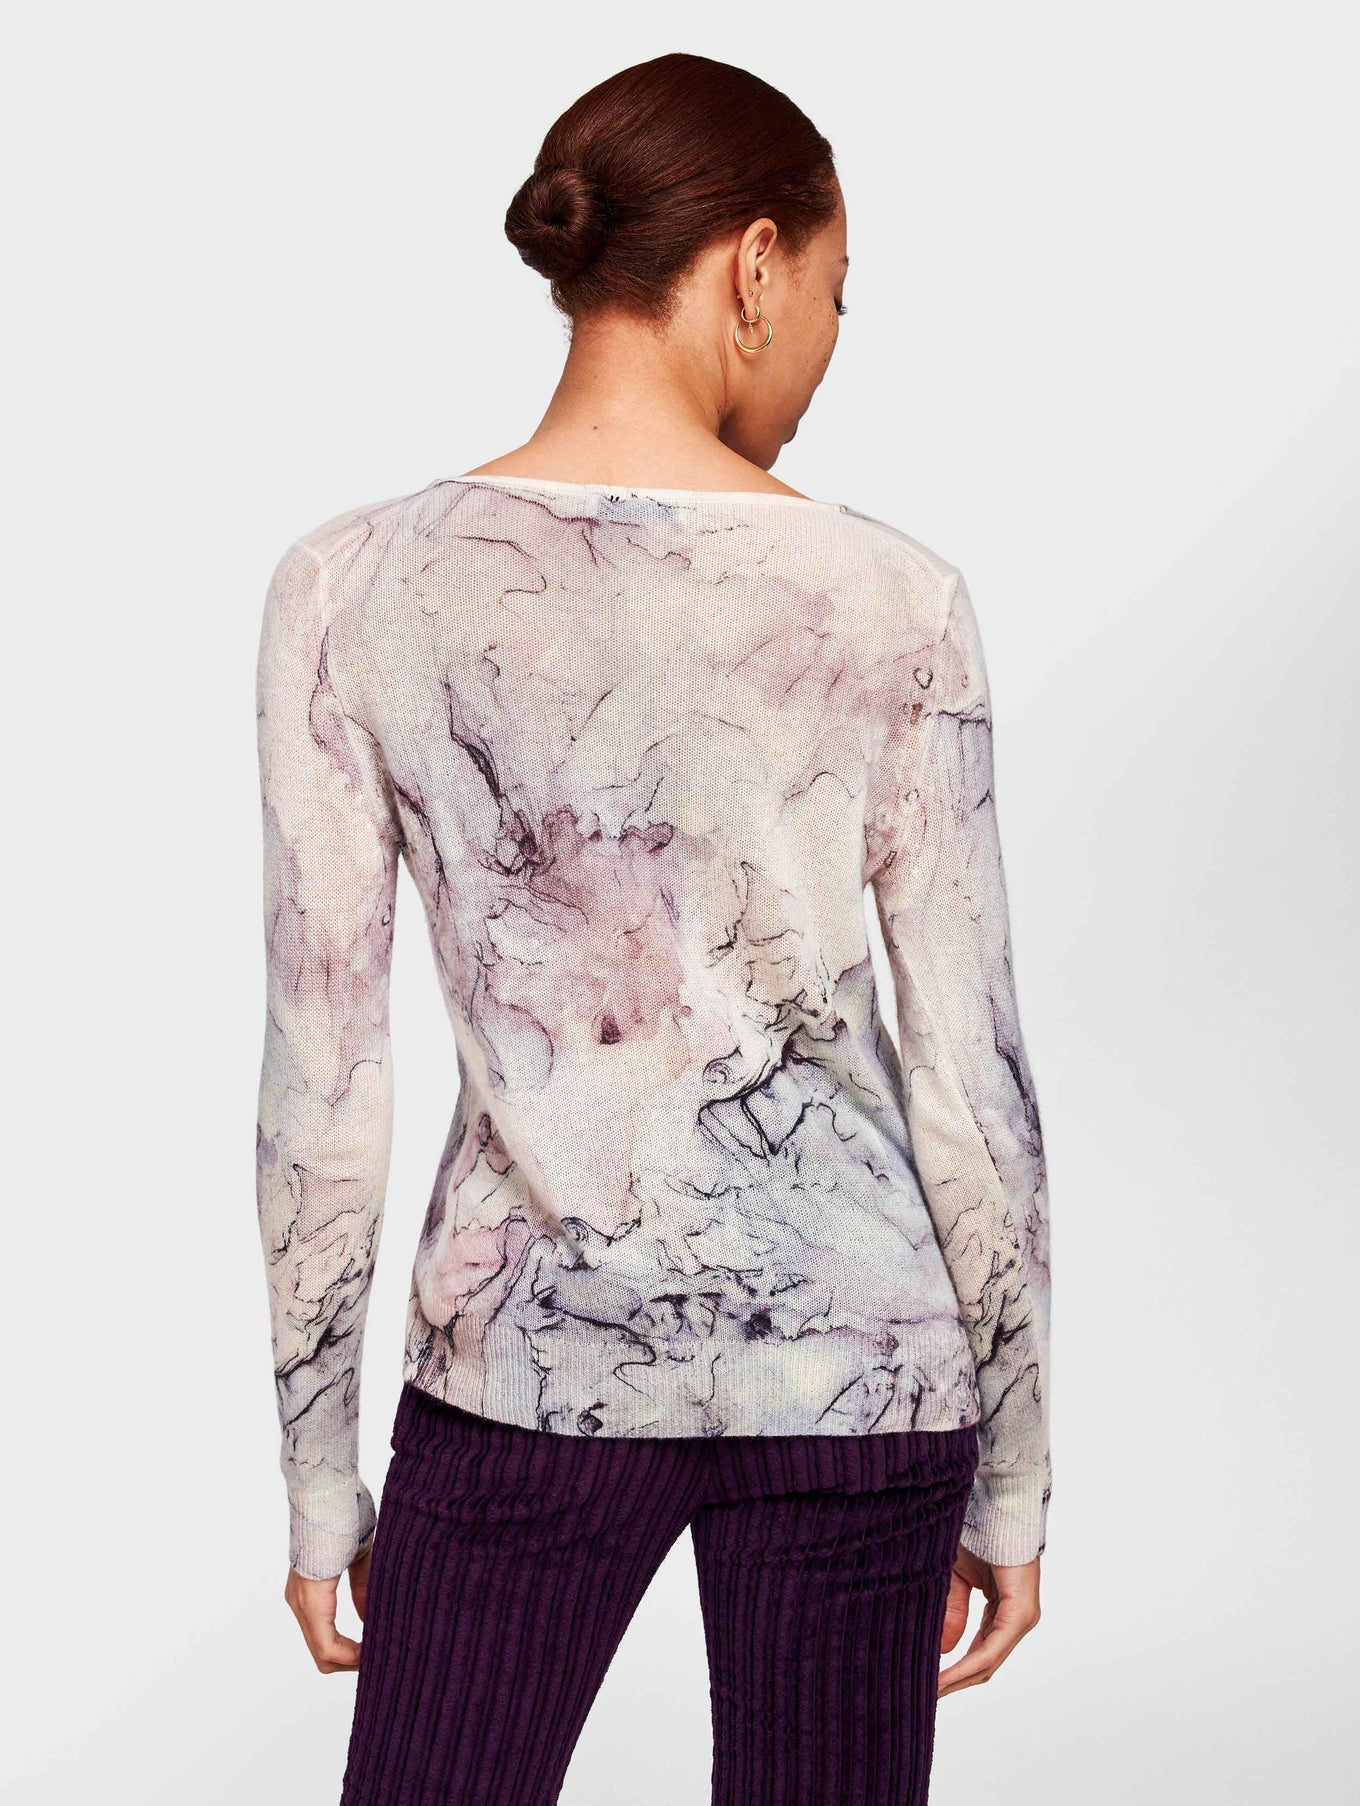 Cashmere Marble Printed Crewneck - Opal Multi - Image 3